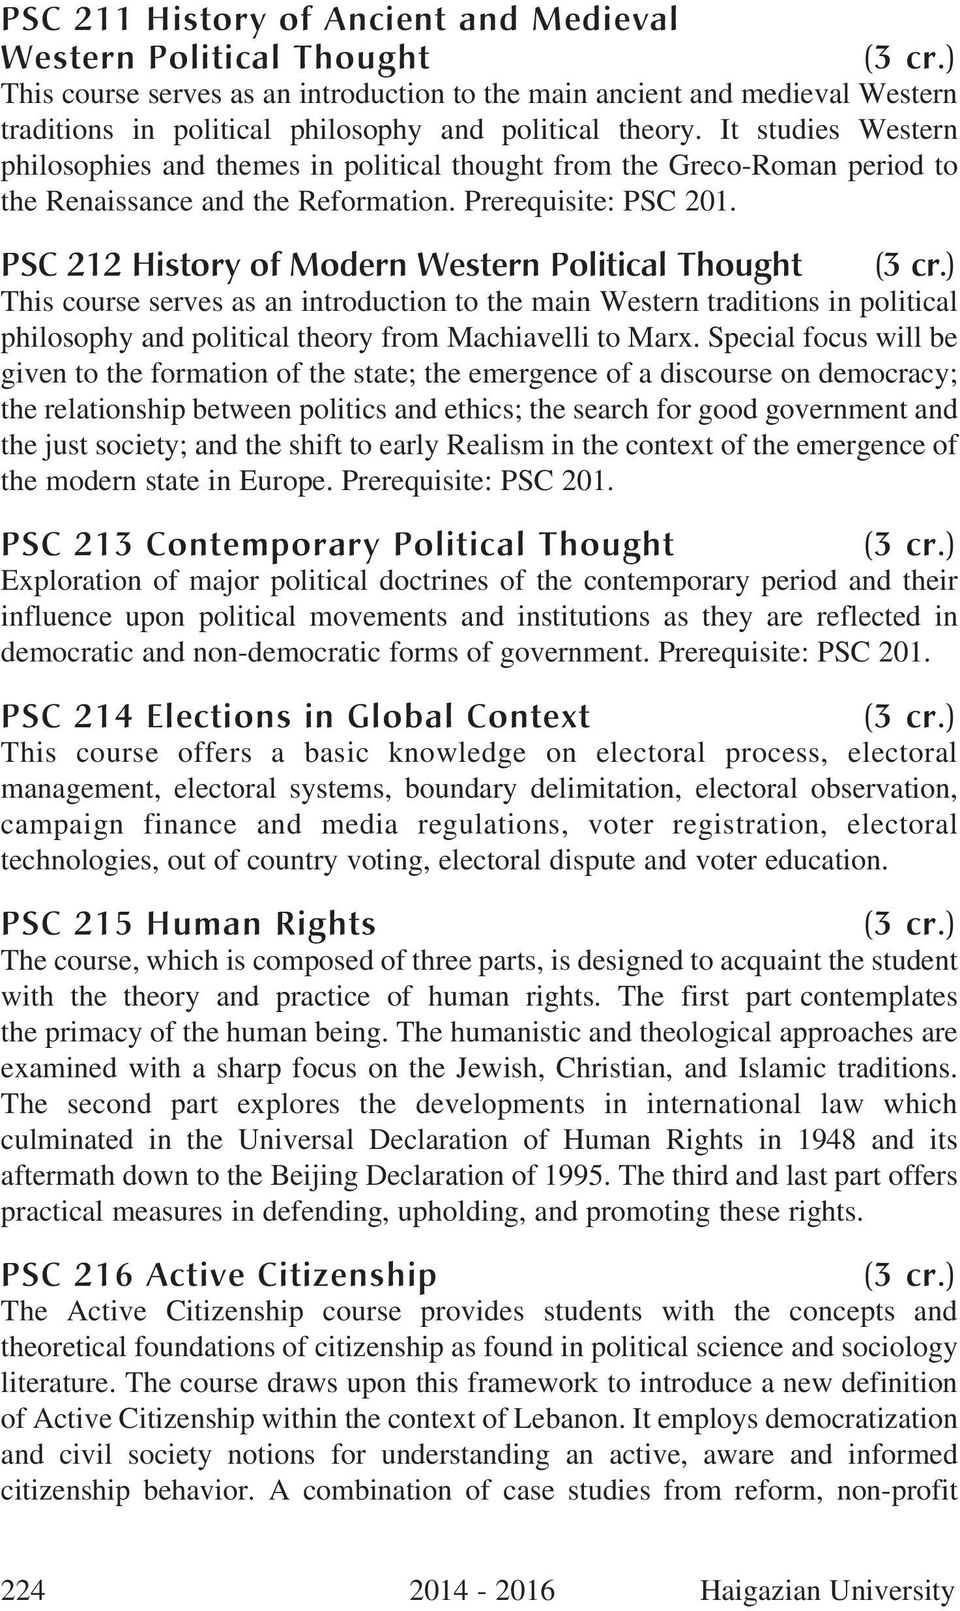 PSC 212 History of Modern Western Political Thought This course serves as an introduction to the main Western traditions in political philosophy and political theory from Machiavelli to Marx.